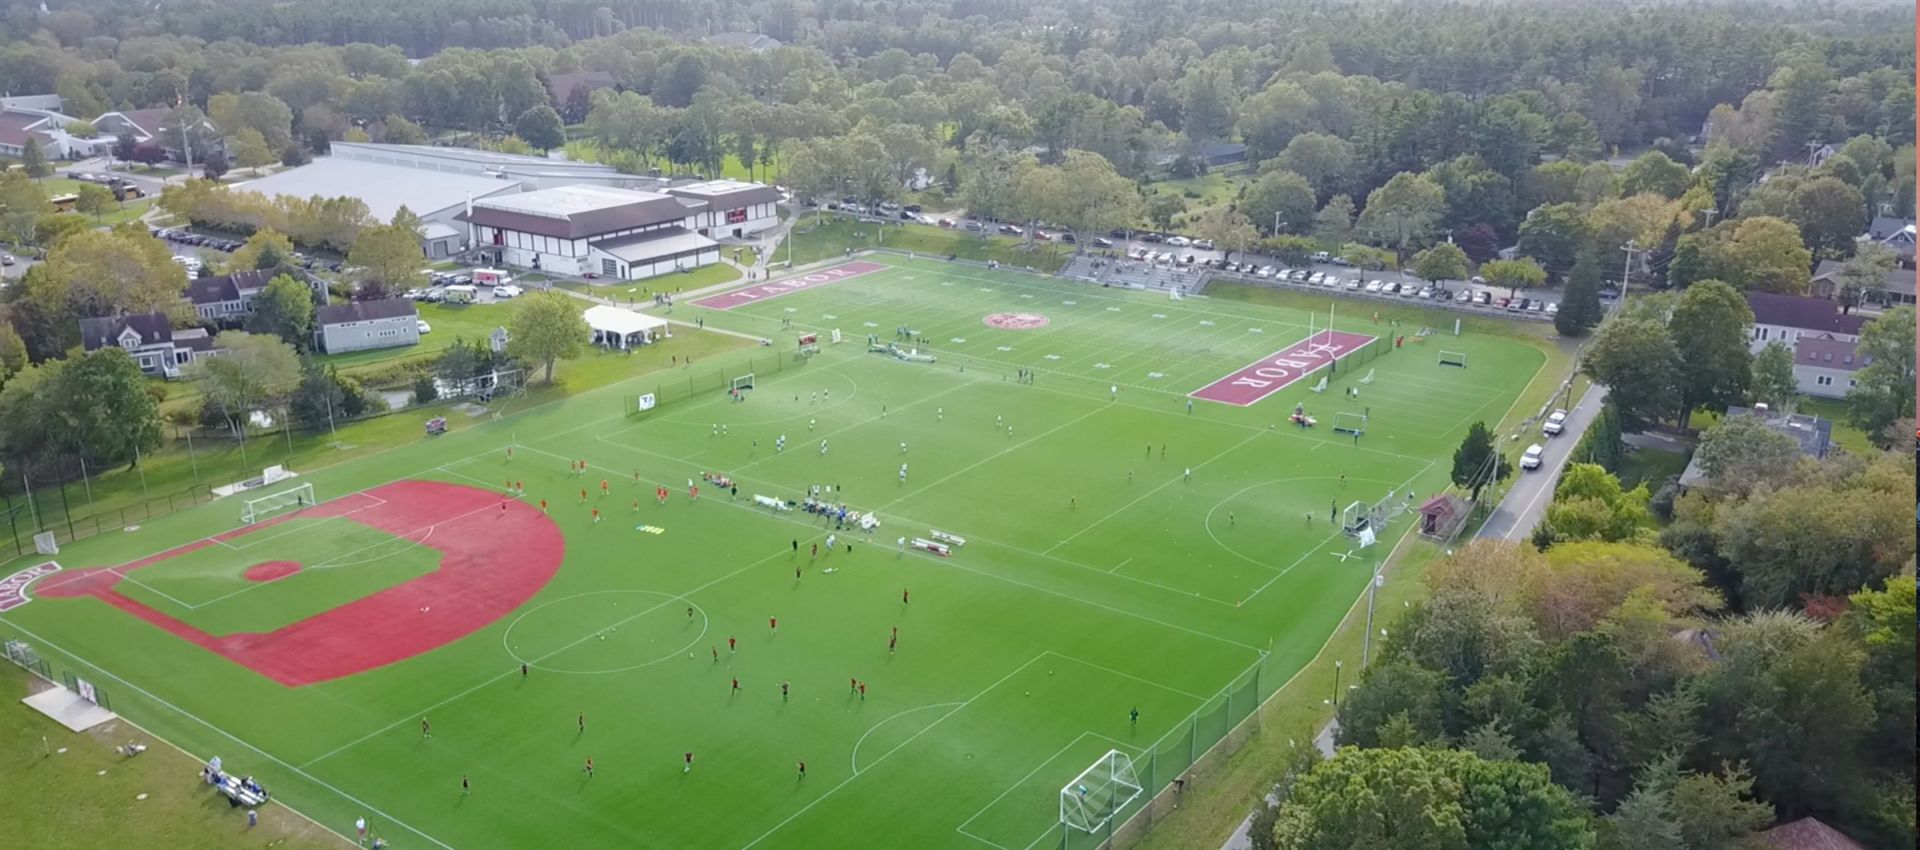 tabor academy campus map Sports Athletics Overview Tabor Academy